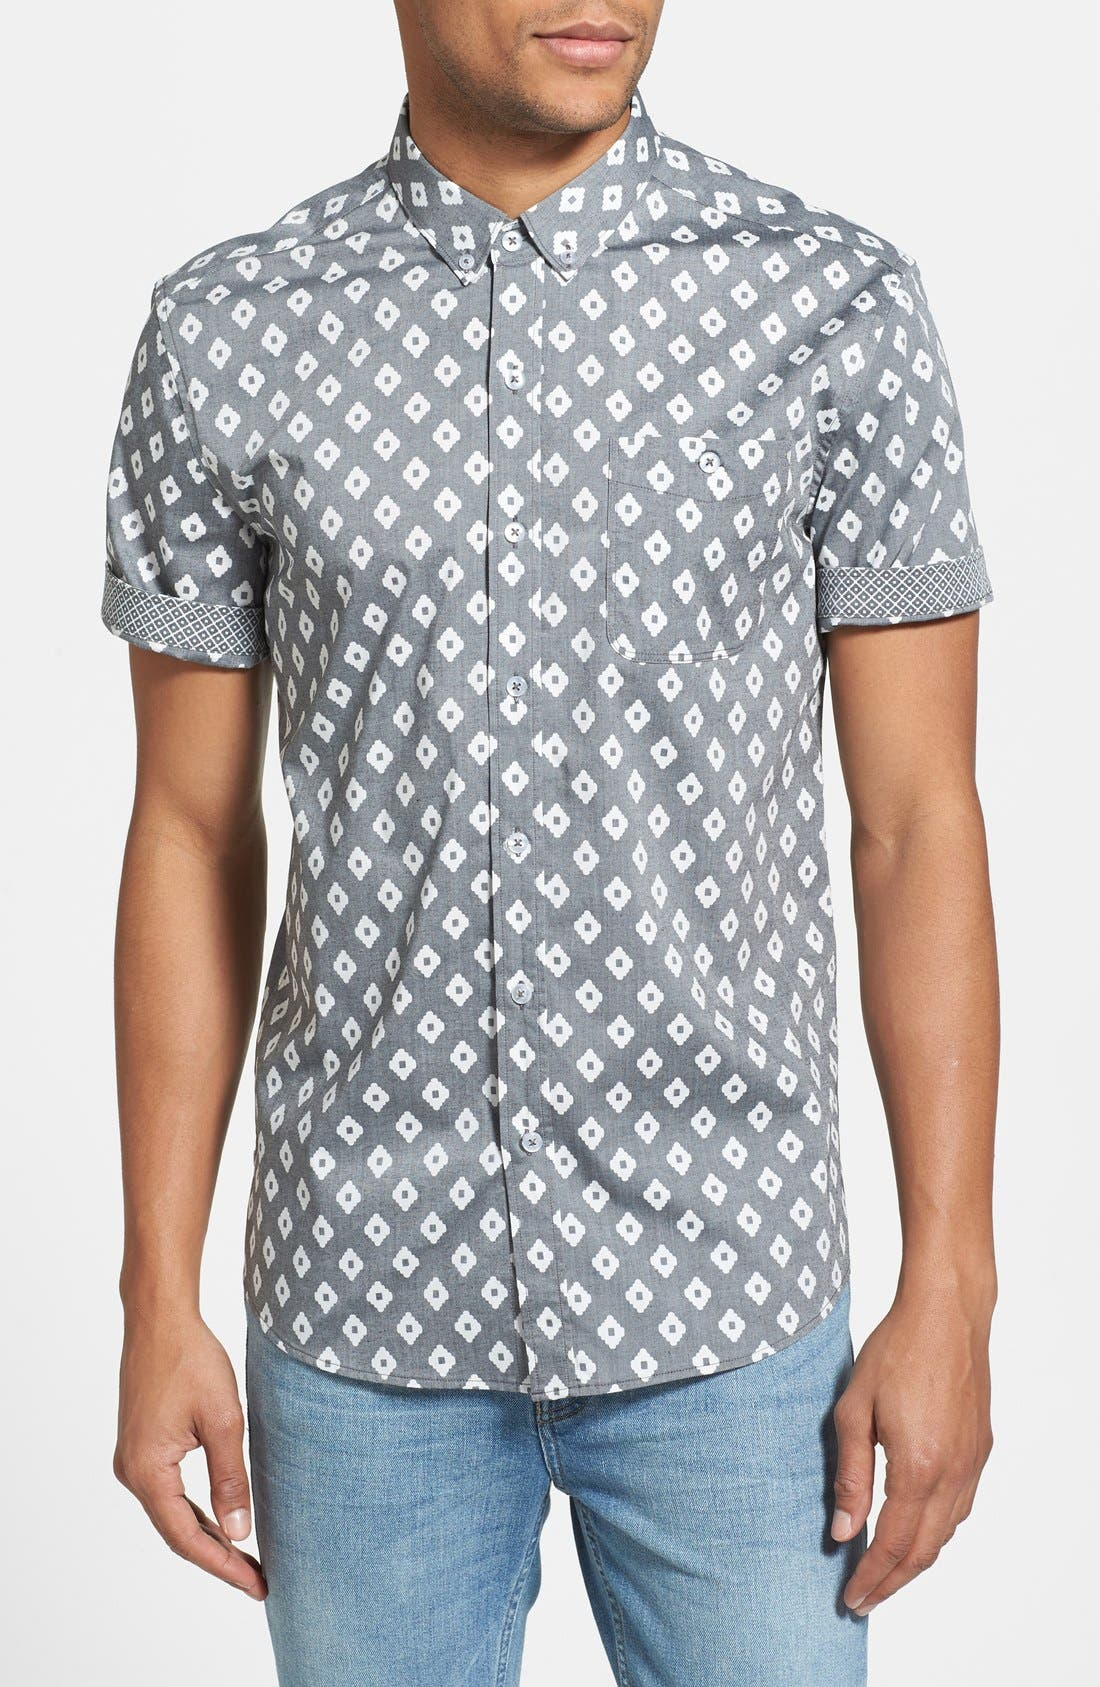 7 DIAMONDS 'Radio Clash' Short Sleeve Sport Shirt, Main, color, 001